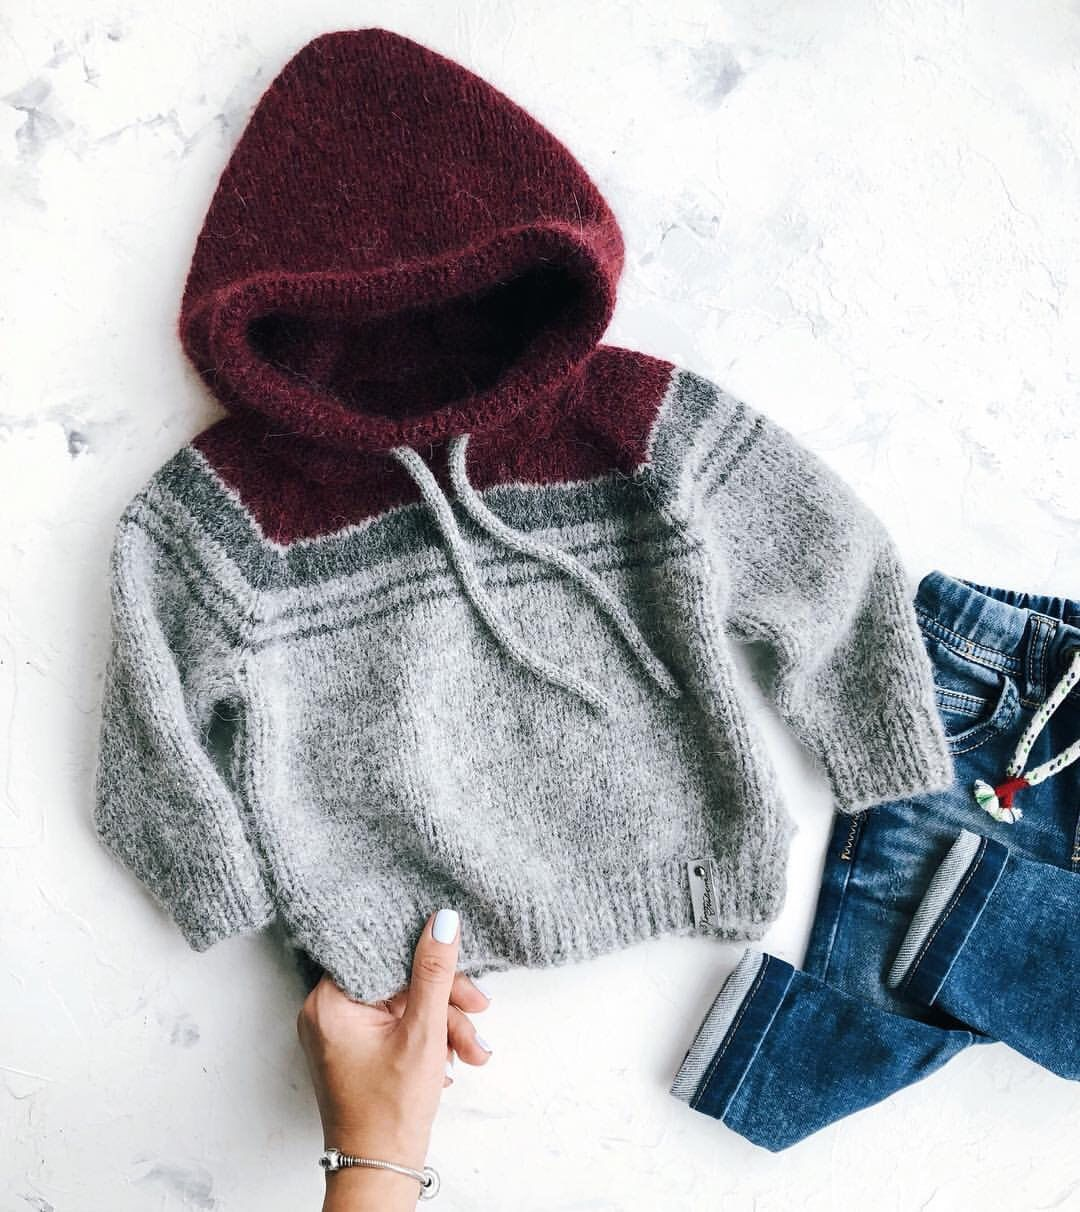 Photo of Baby hooded sweater knit baby sweater knit baby jacket wool baby jamper knit baby coat baby boy sweater baby girl cardigan baby sweater grey